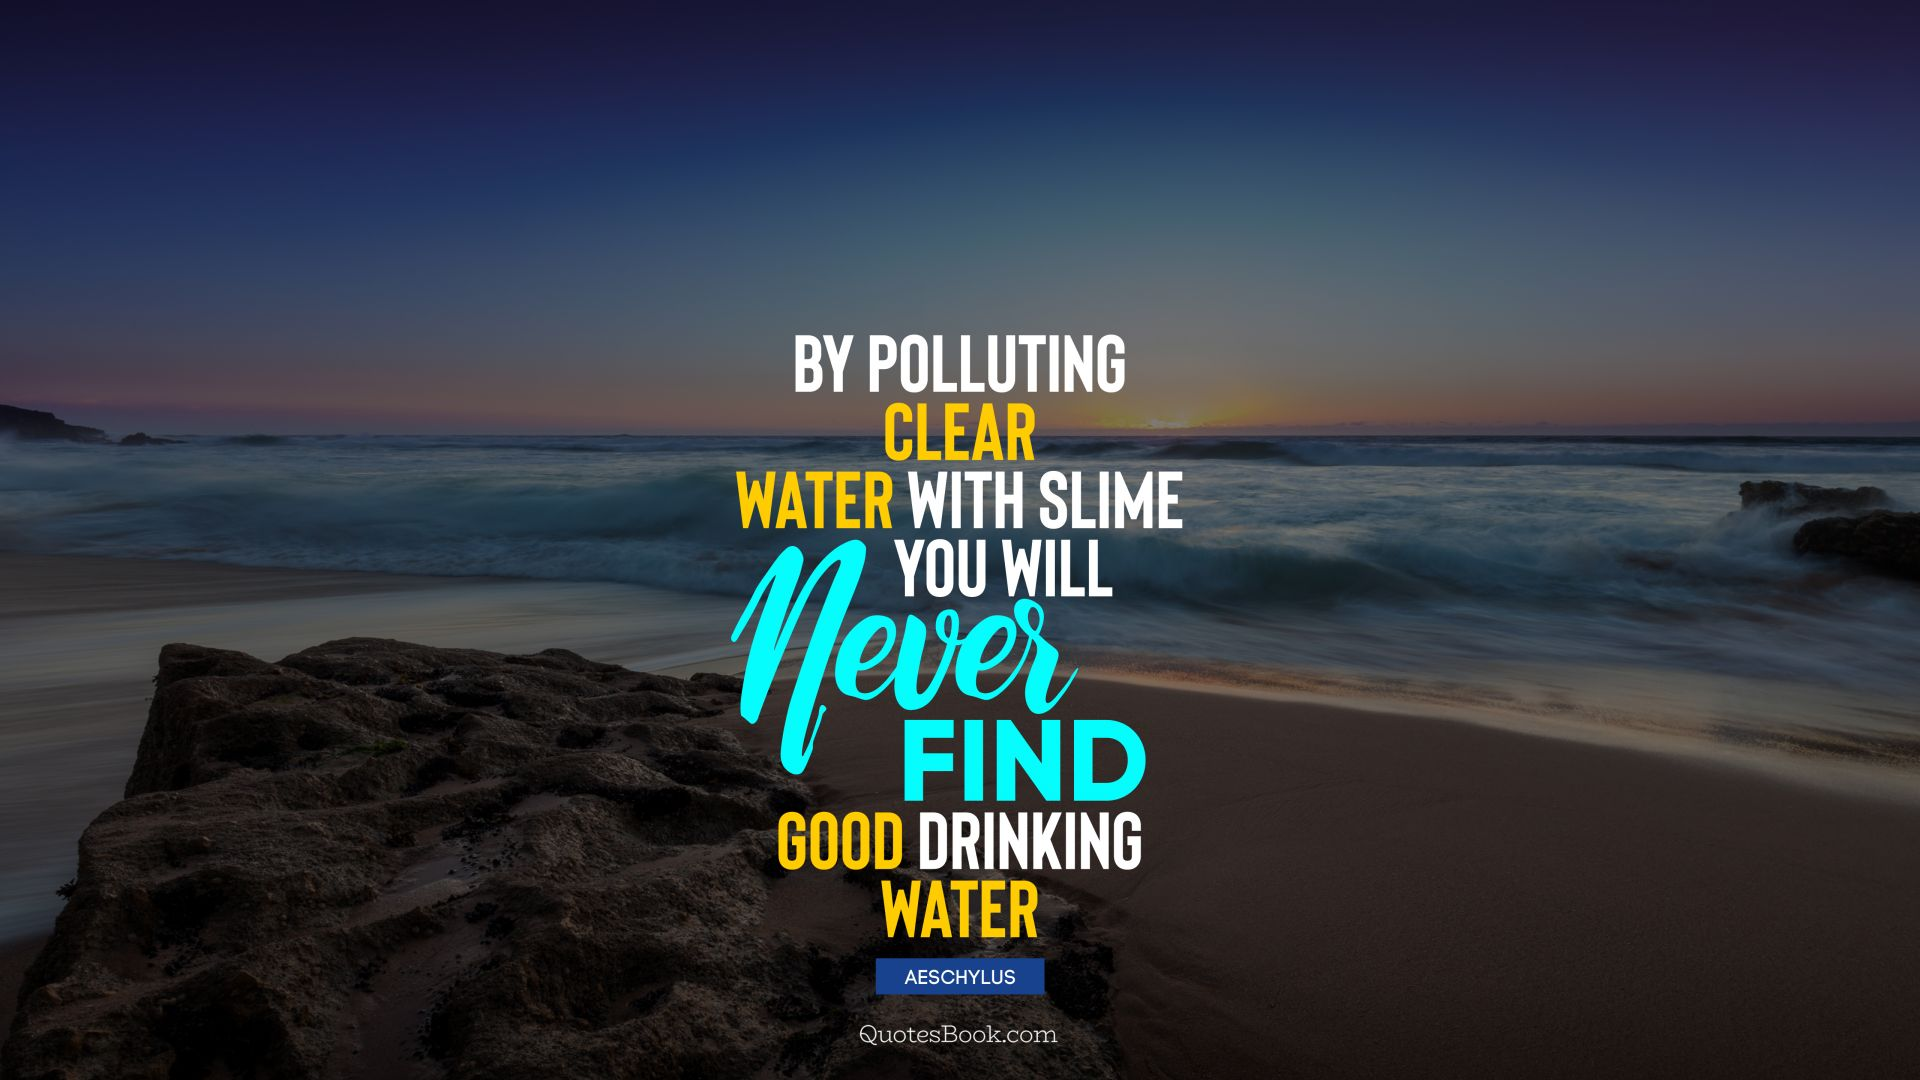 By polluting clear water with slime you will never find good drinking water. - Quote by Aeschylus